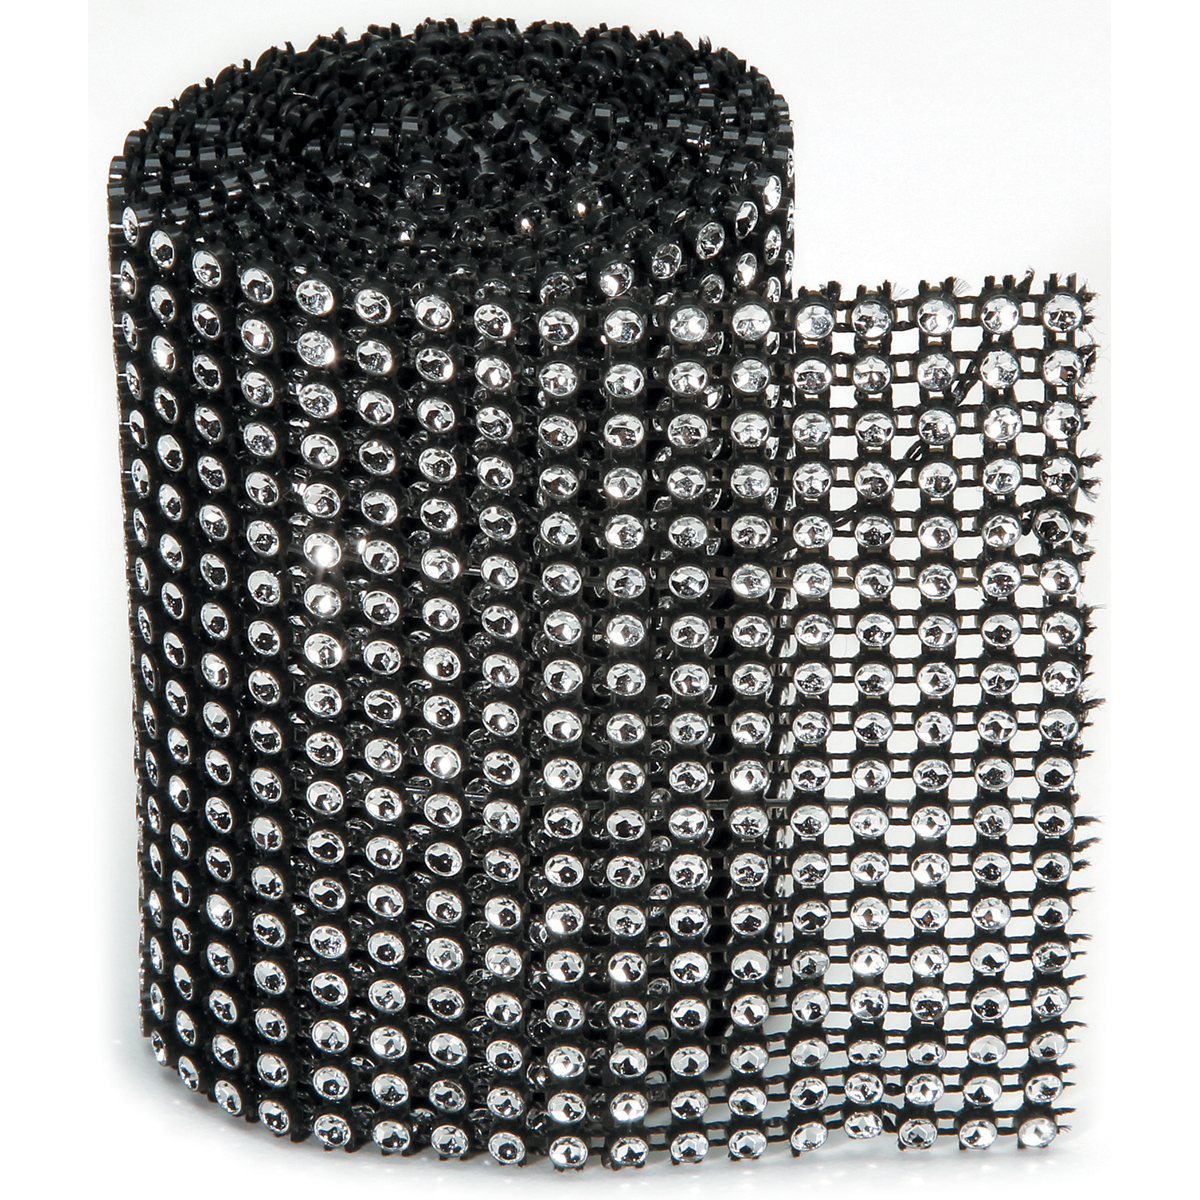 Bling On A Roll 3mm X 1yd-18 Row, Black/Silver Multi-Colored